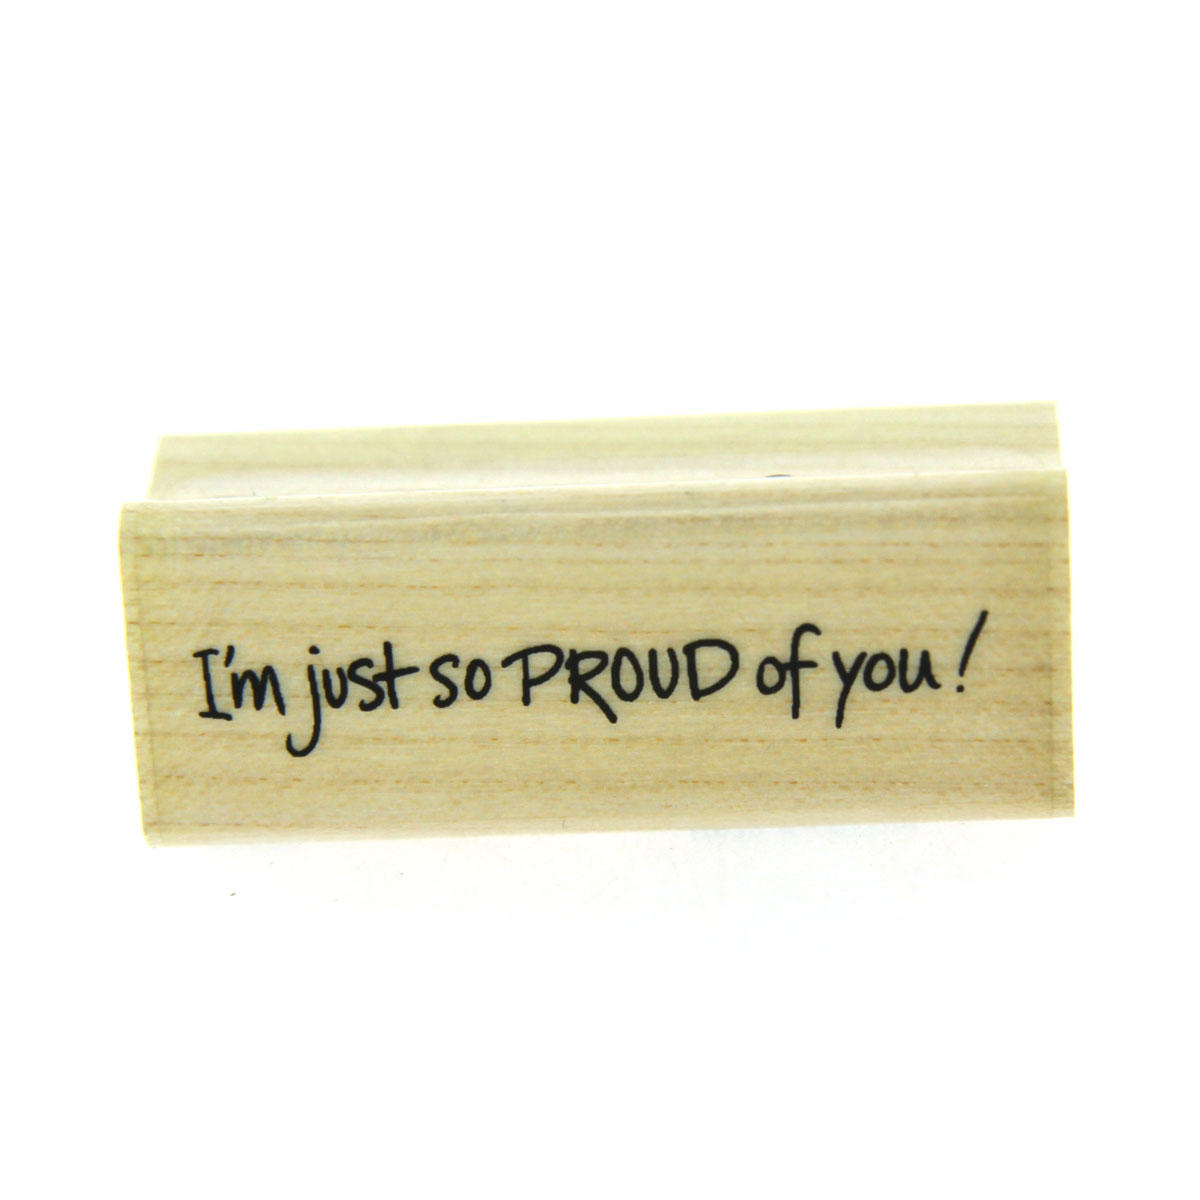 I'm just so proud of you! Rubber Stamp